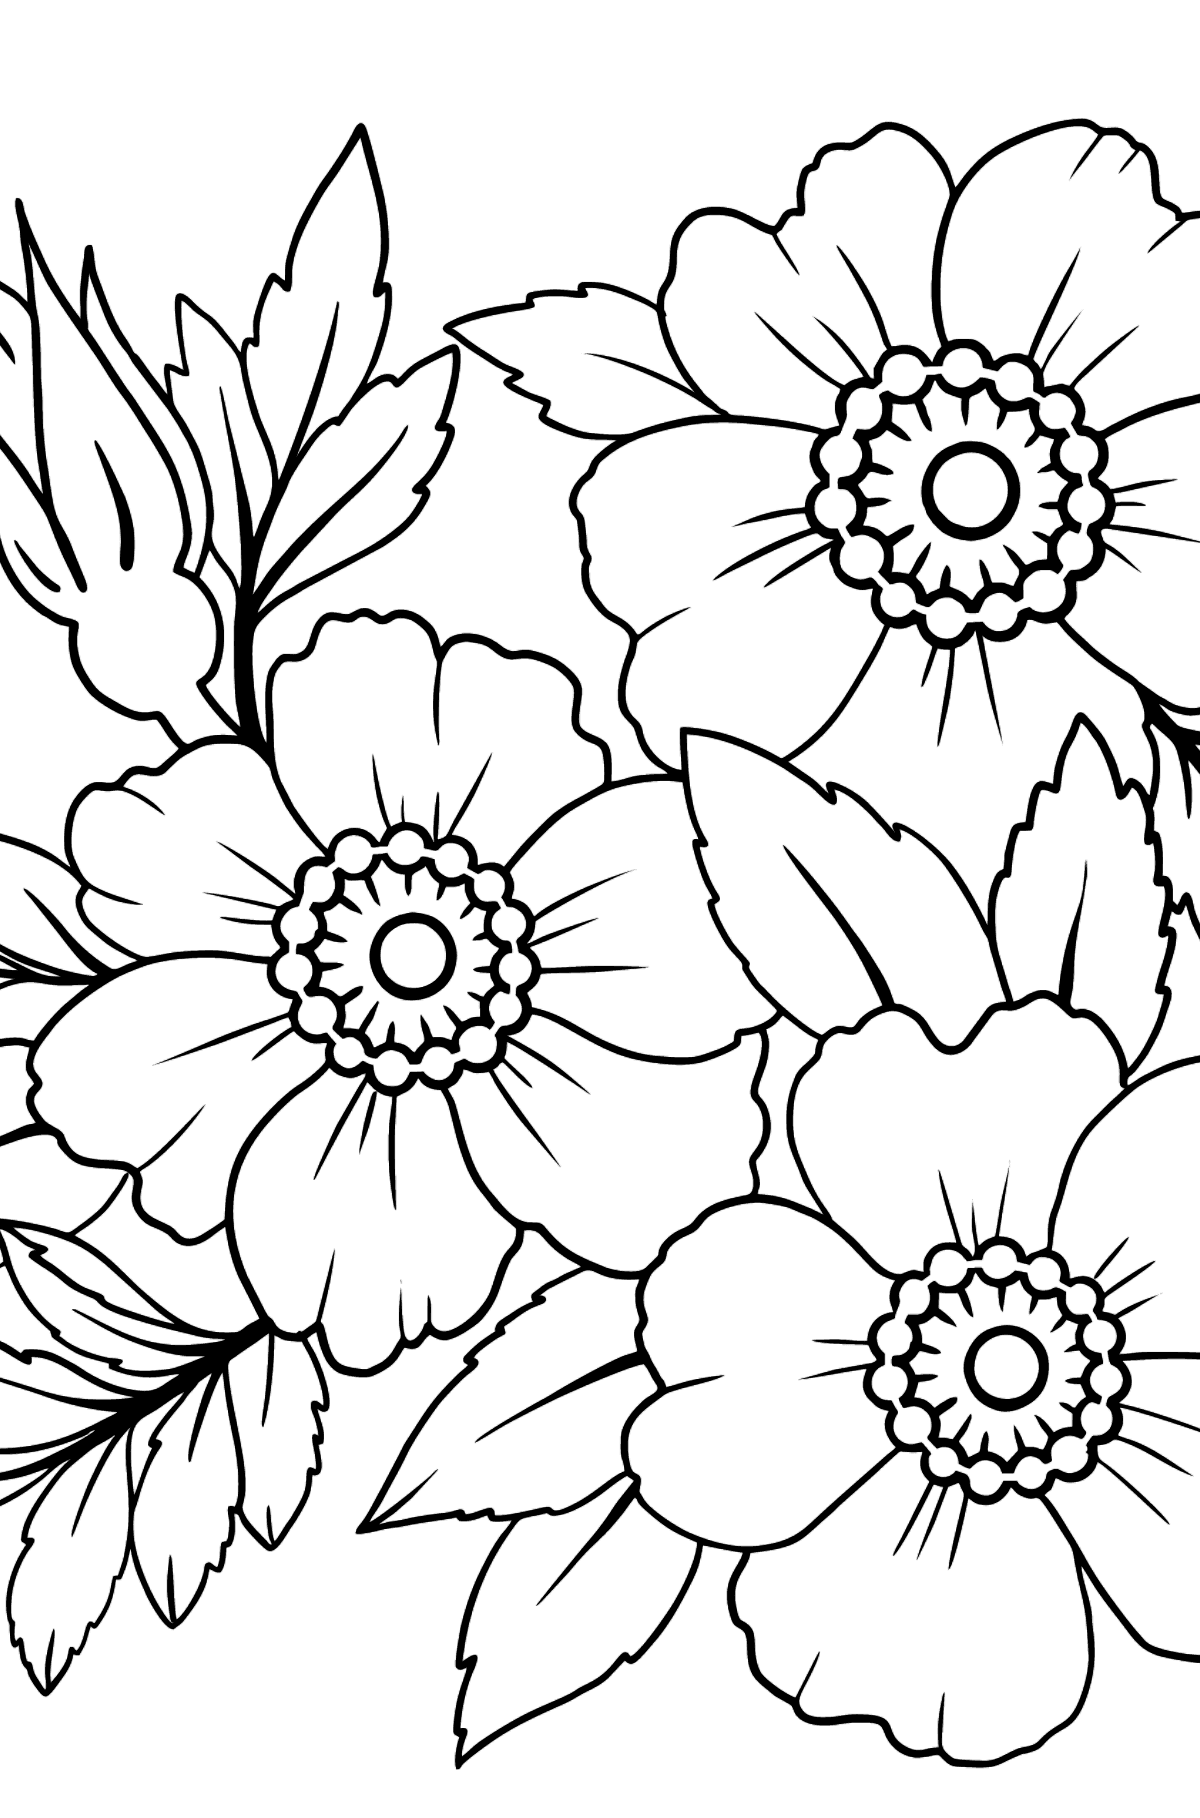 Flower Coloring Page (A4) - A Japanese Anemone with Pink Petals - Coloring Pages for Kids